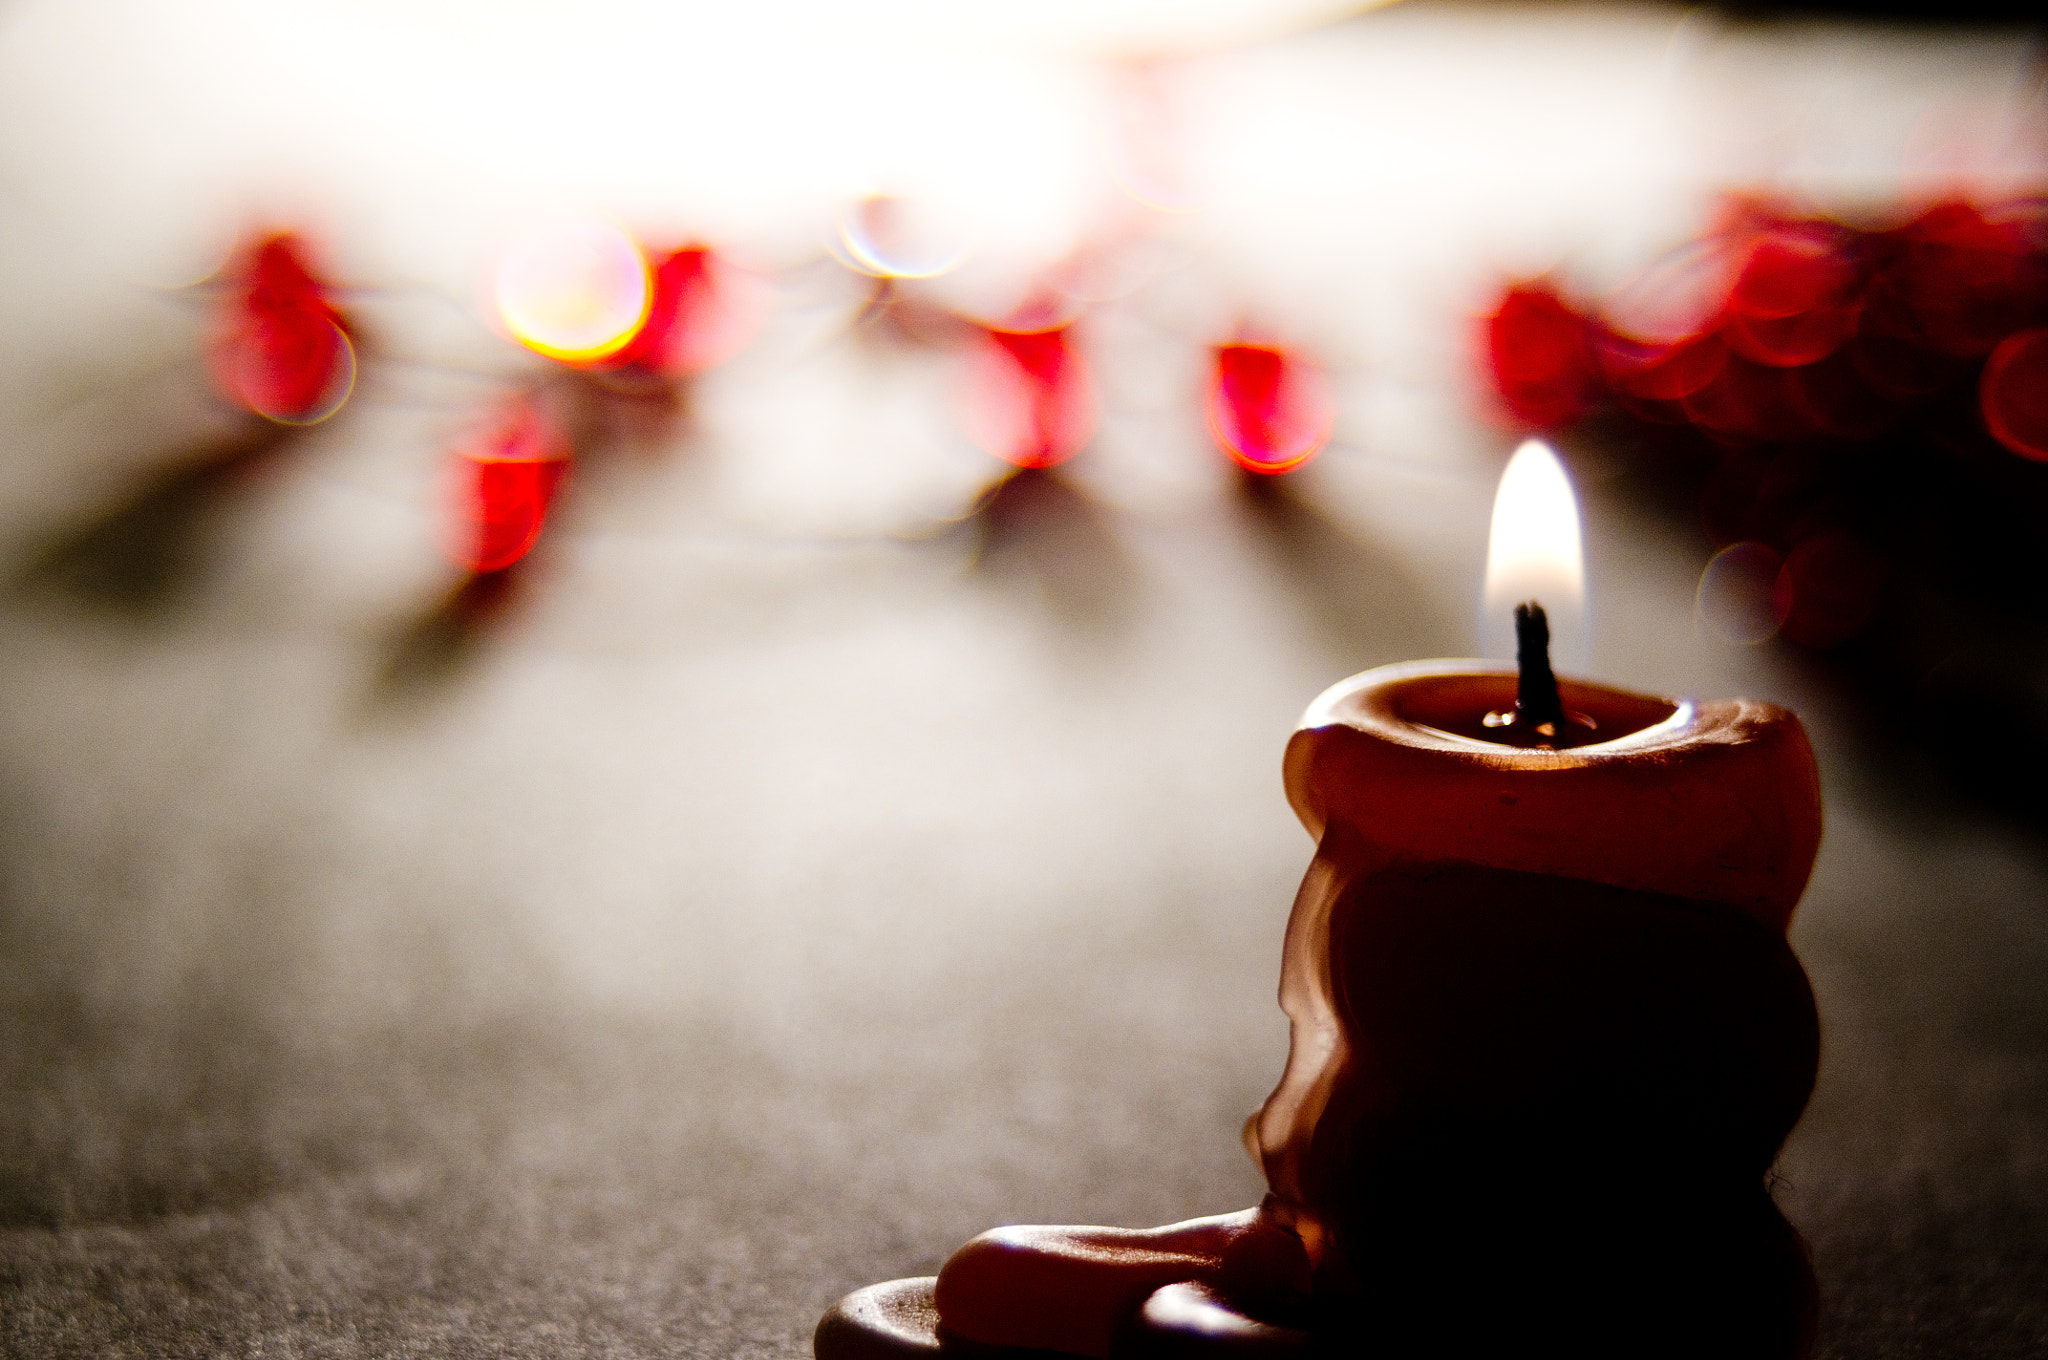 Photograph red candle by Linara Khis on 500px